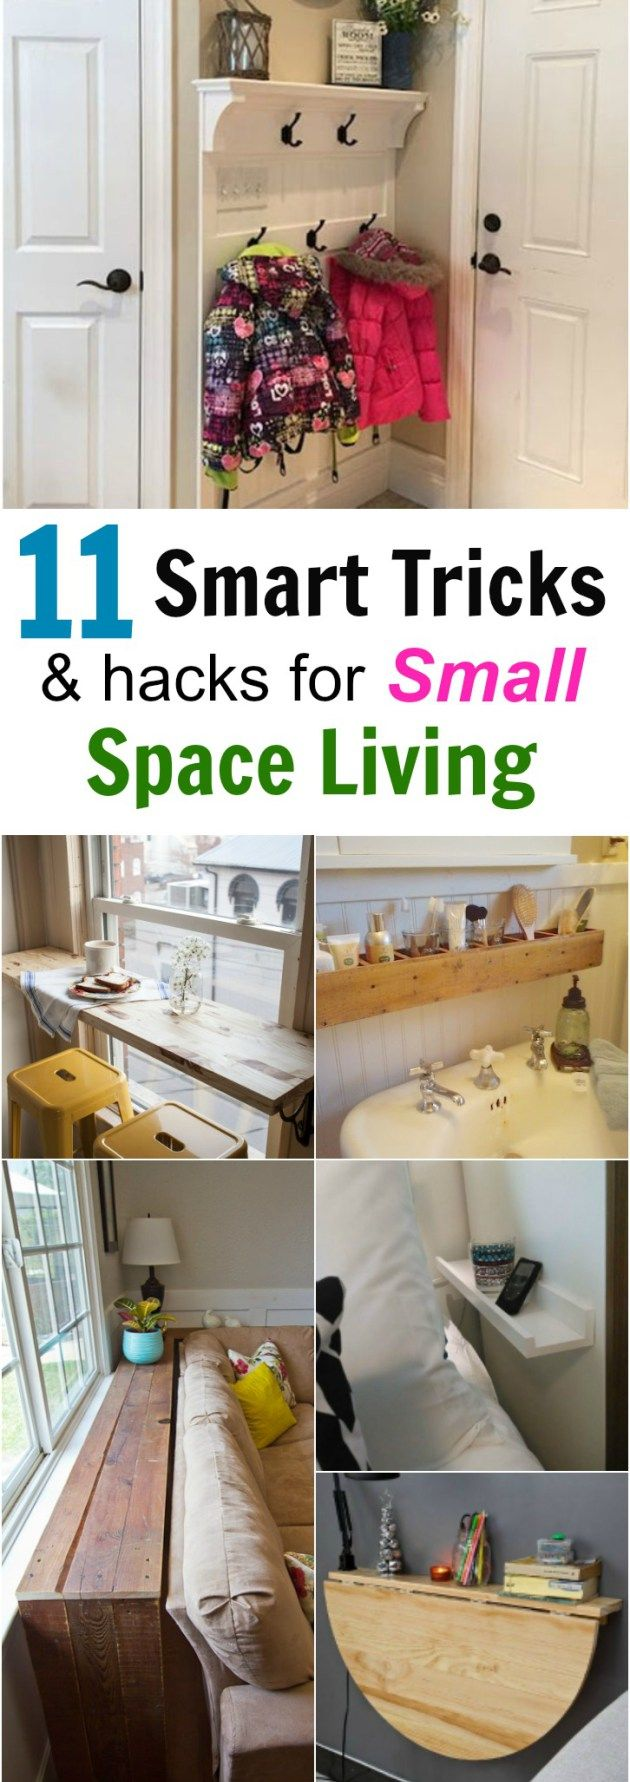 Photo of 11 Smart Tricks for Small Space Living – Forks 'n' Flip Flops